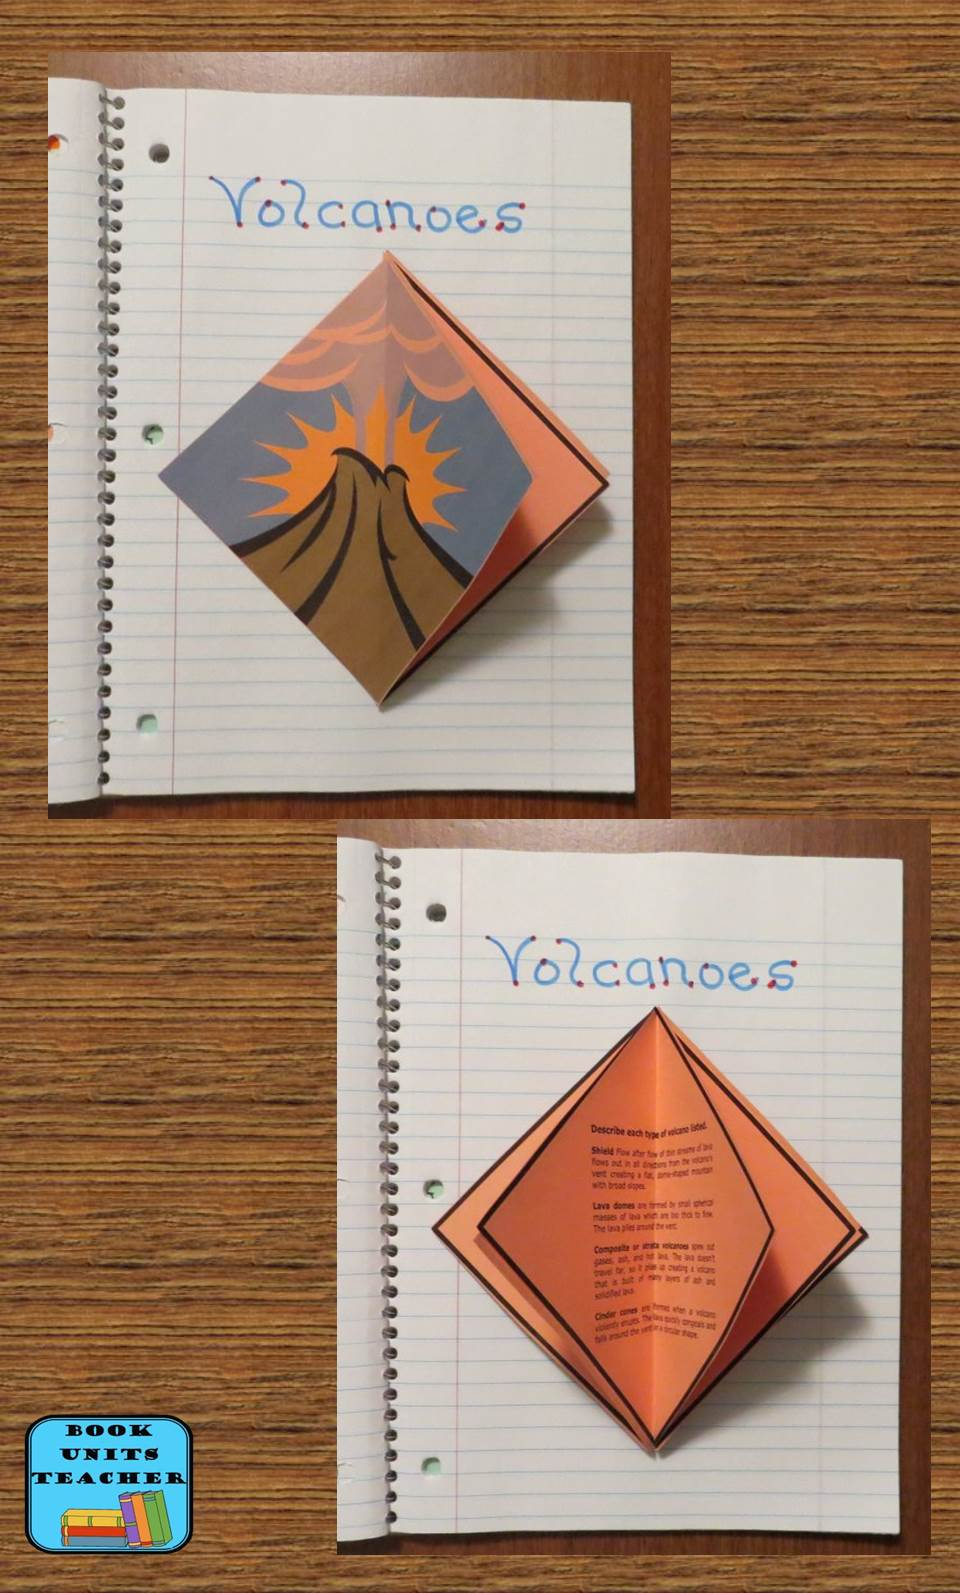 Free Foldable Organizer for Students to Learn about Volcanoes